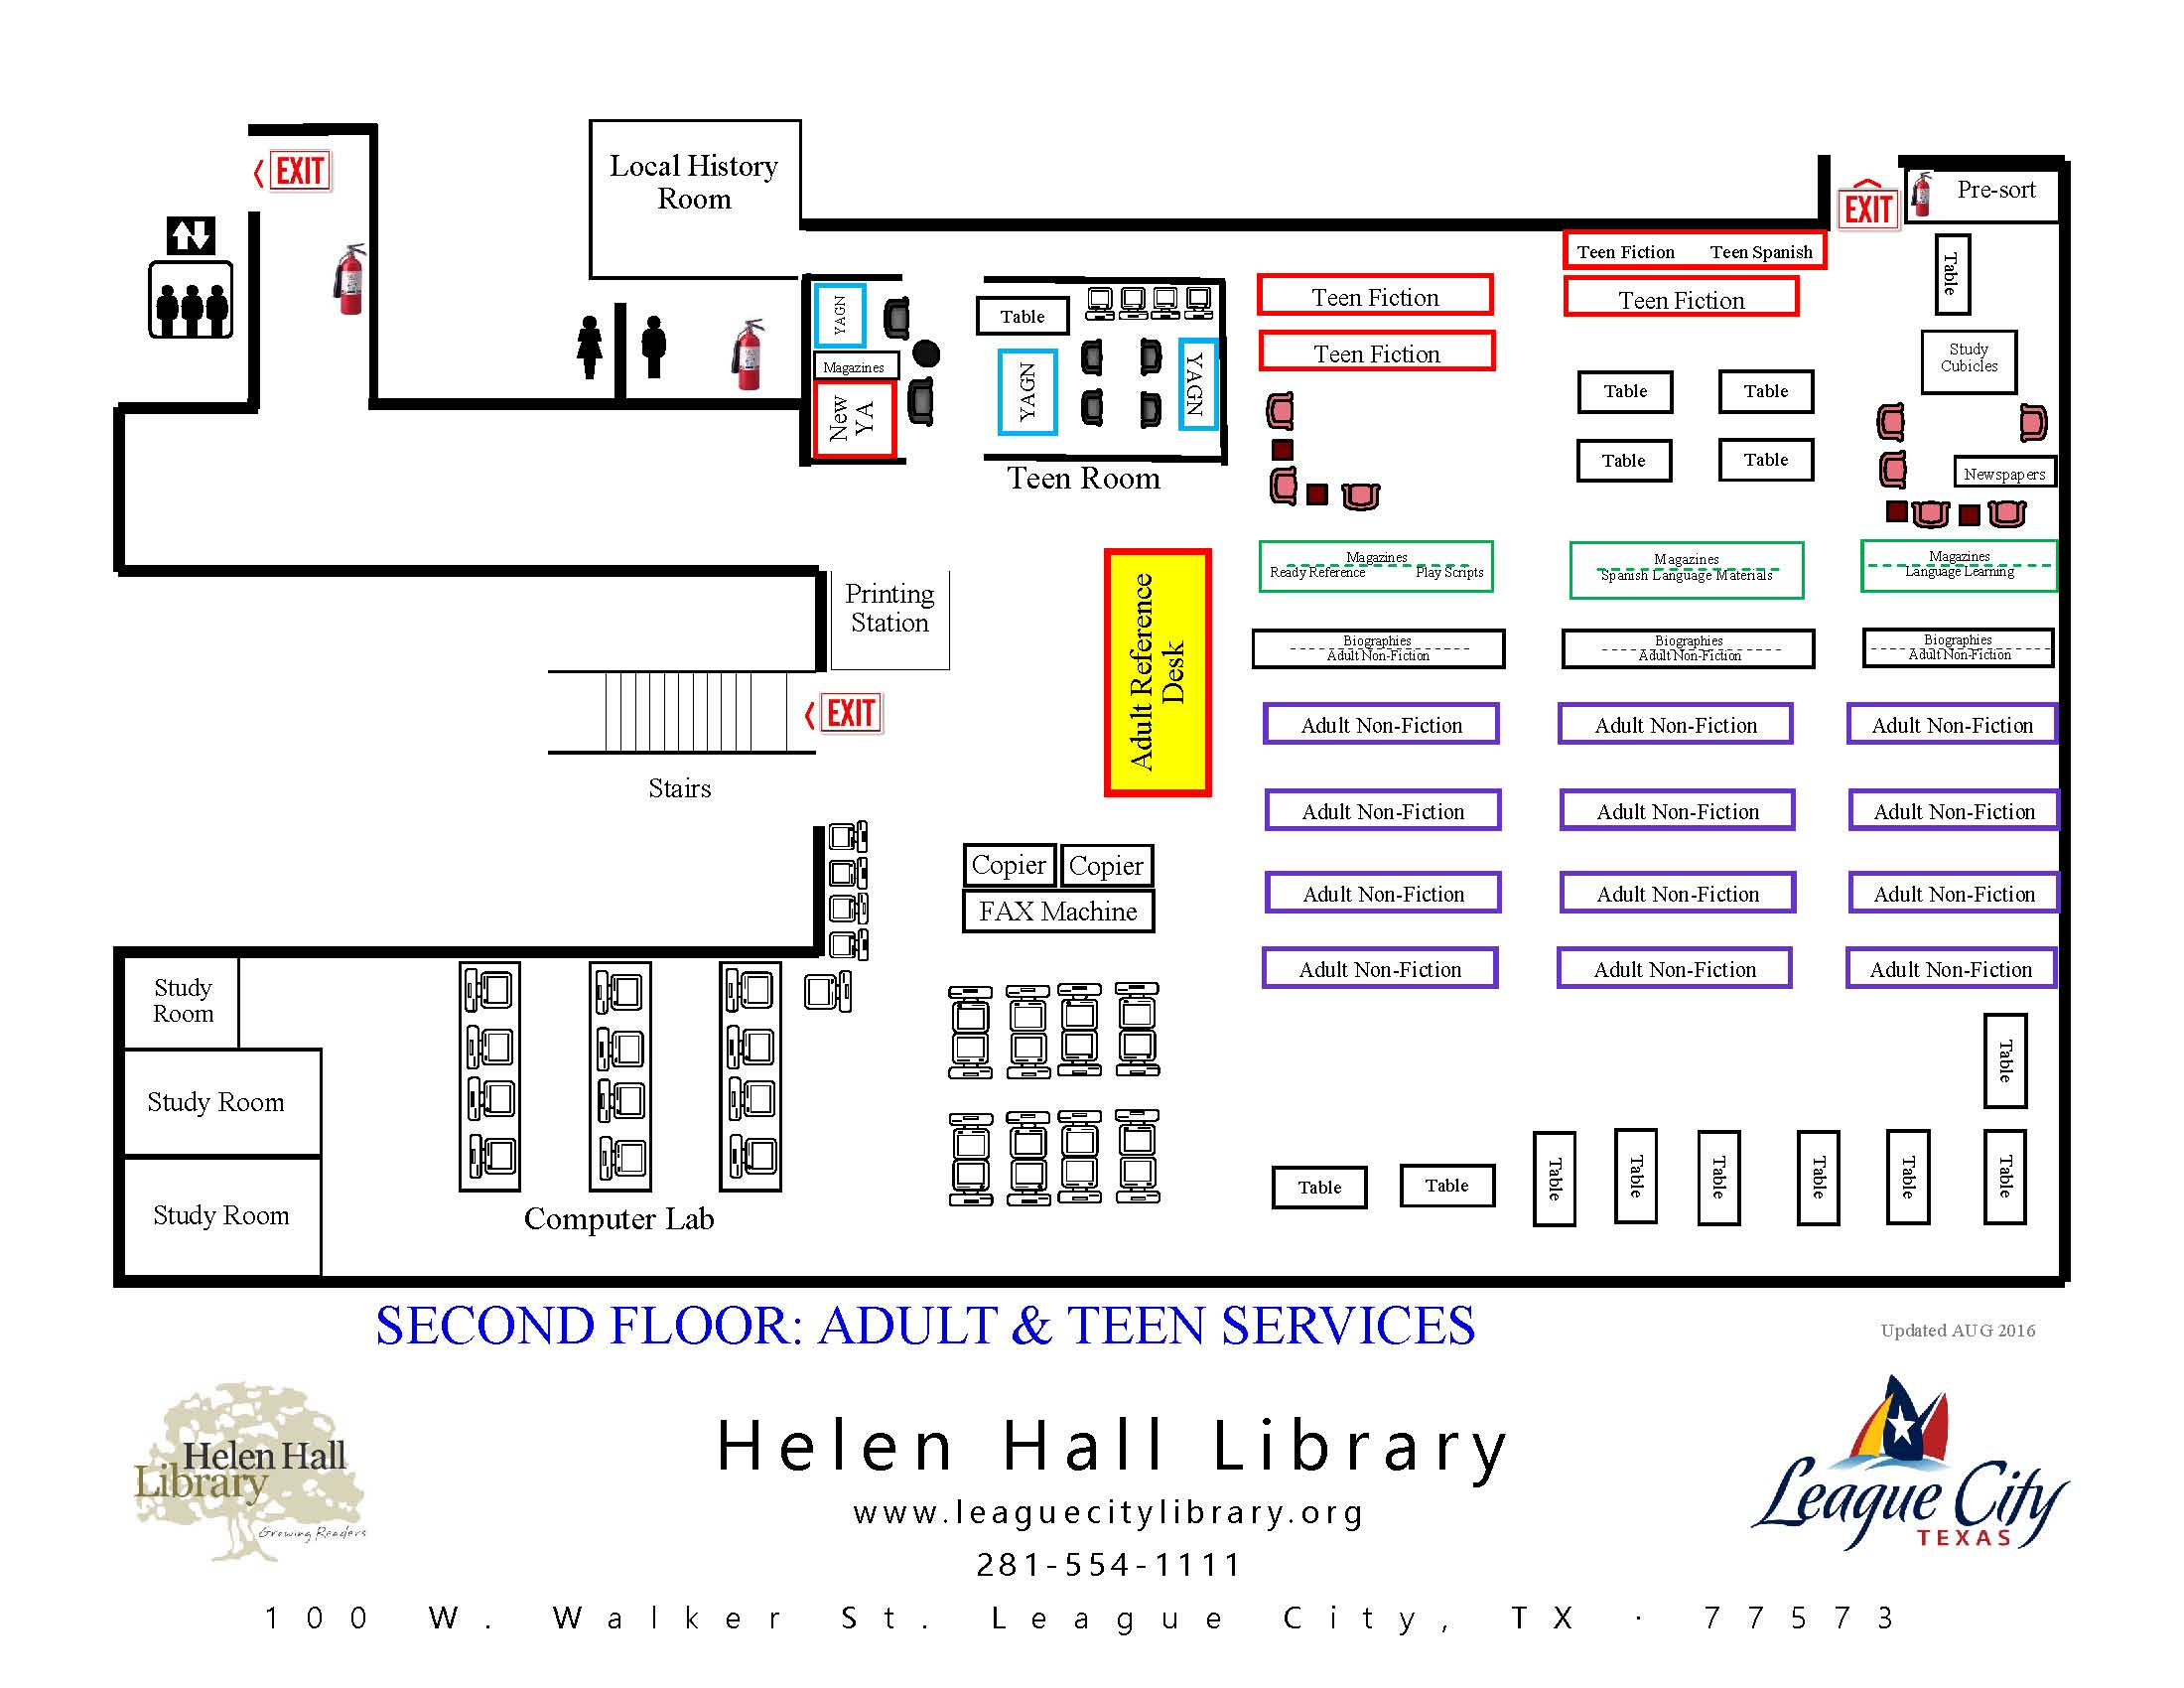 Map of Second Floor Adult and Teen Services